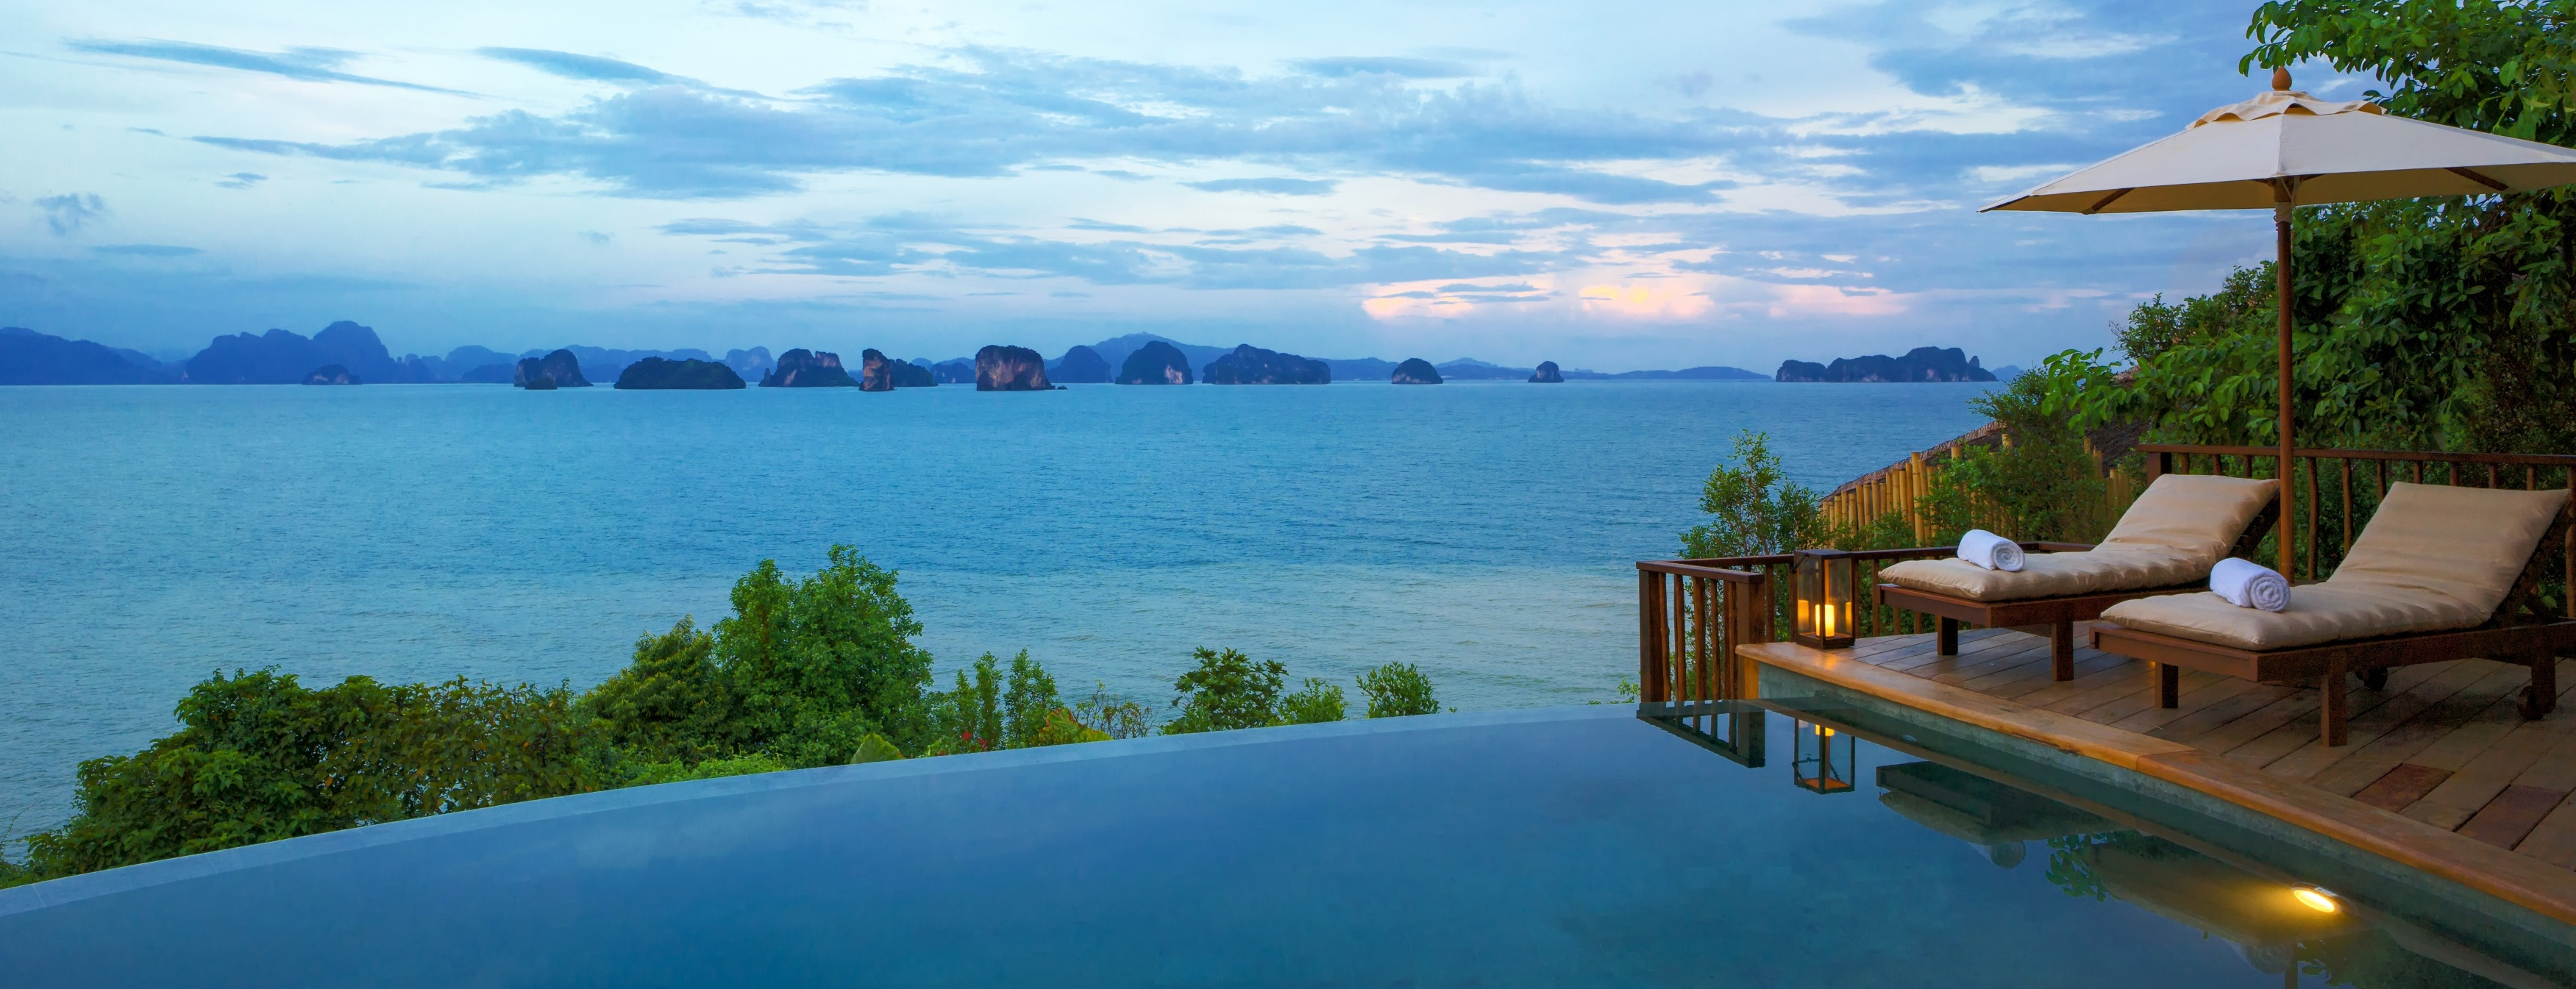 The_View_Pool_Overlooking_Phang_Nga_Bay